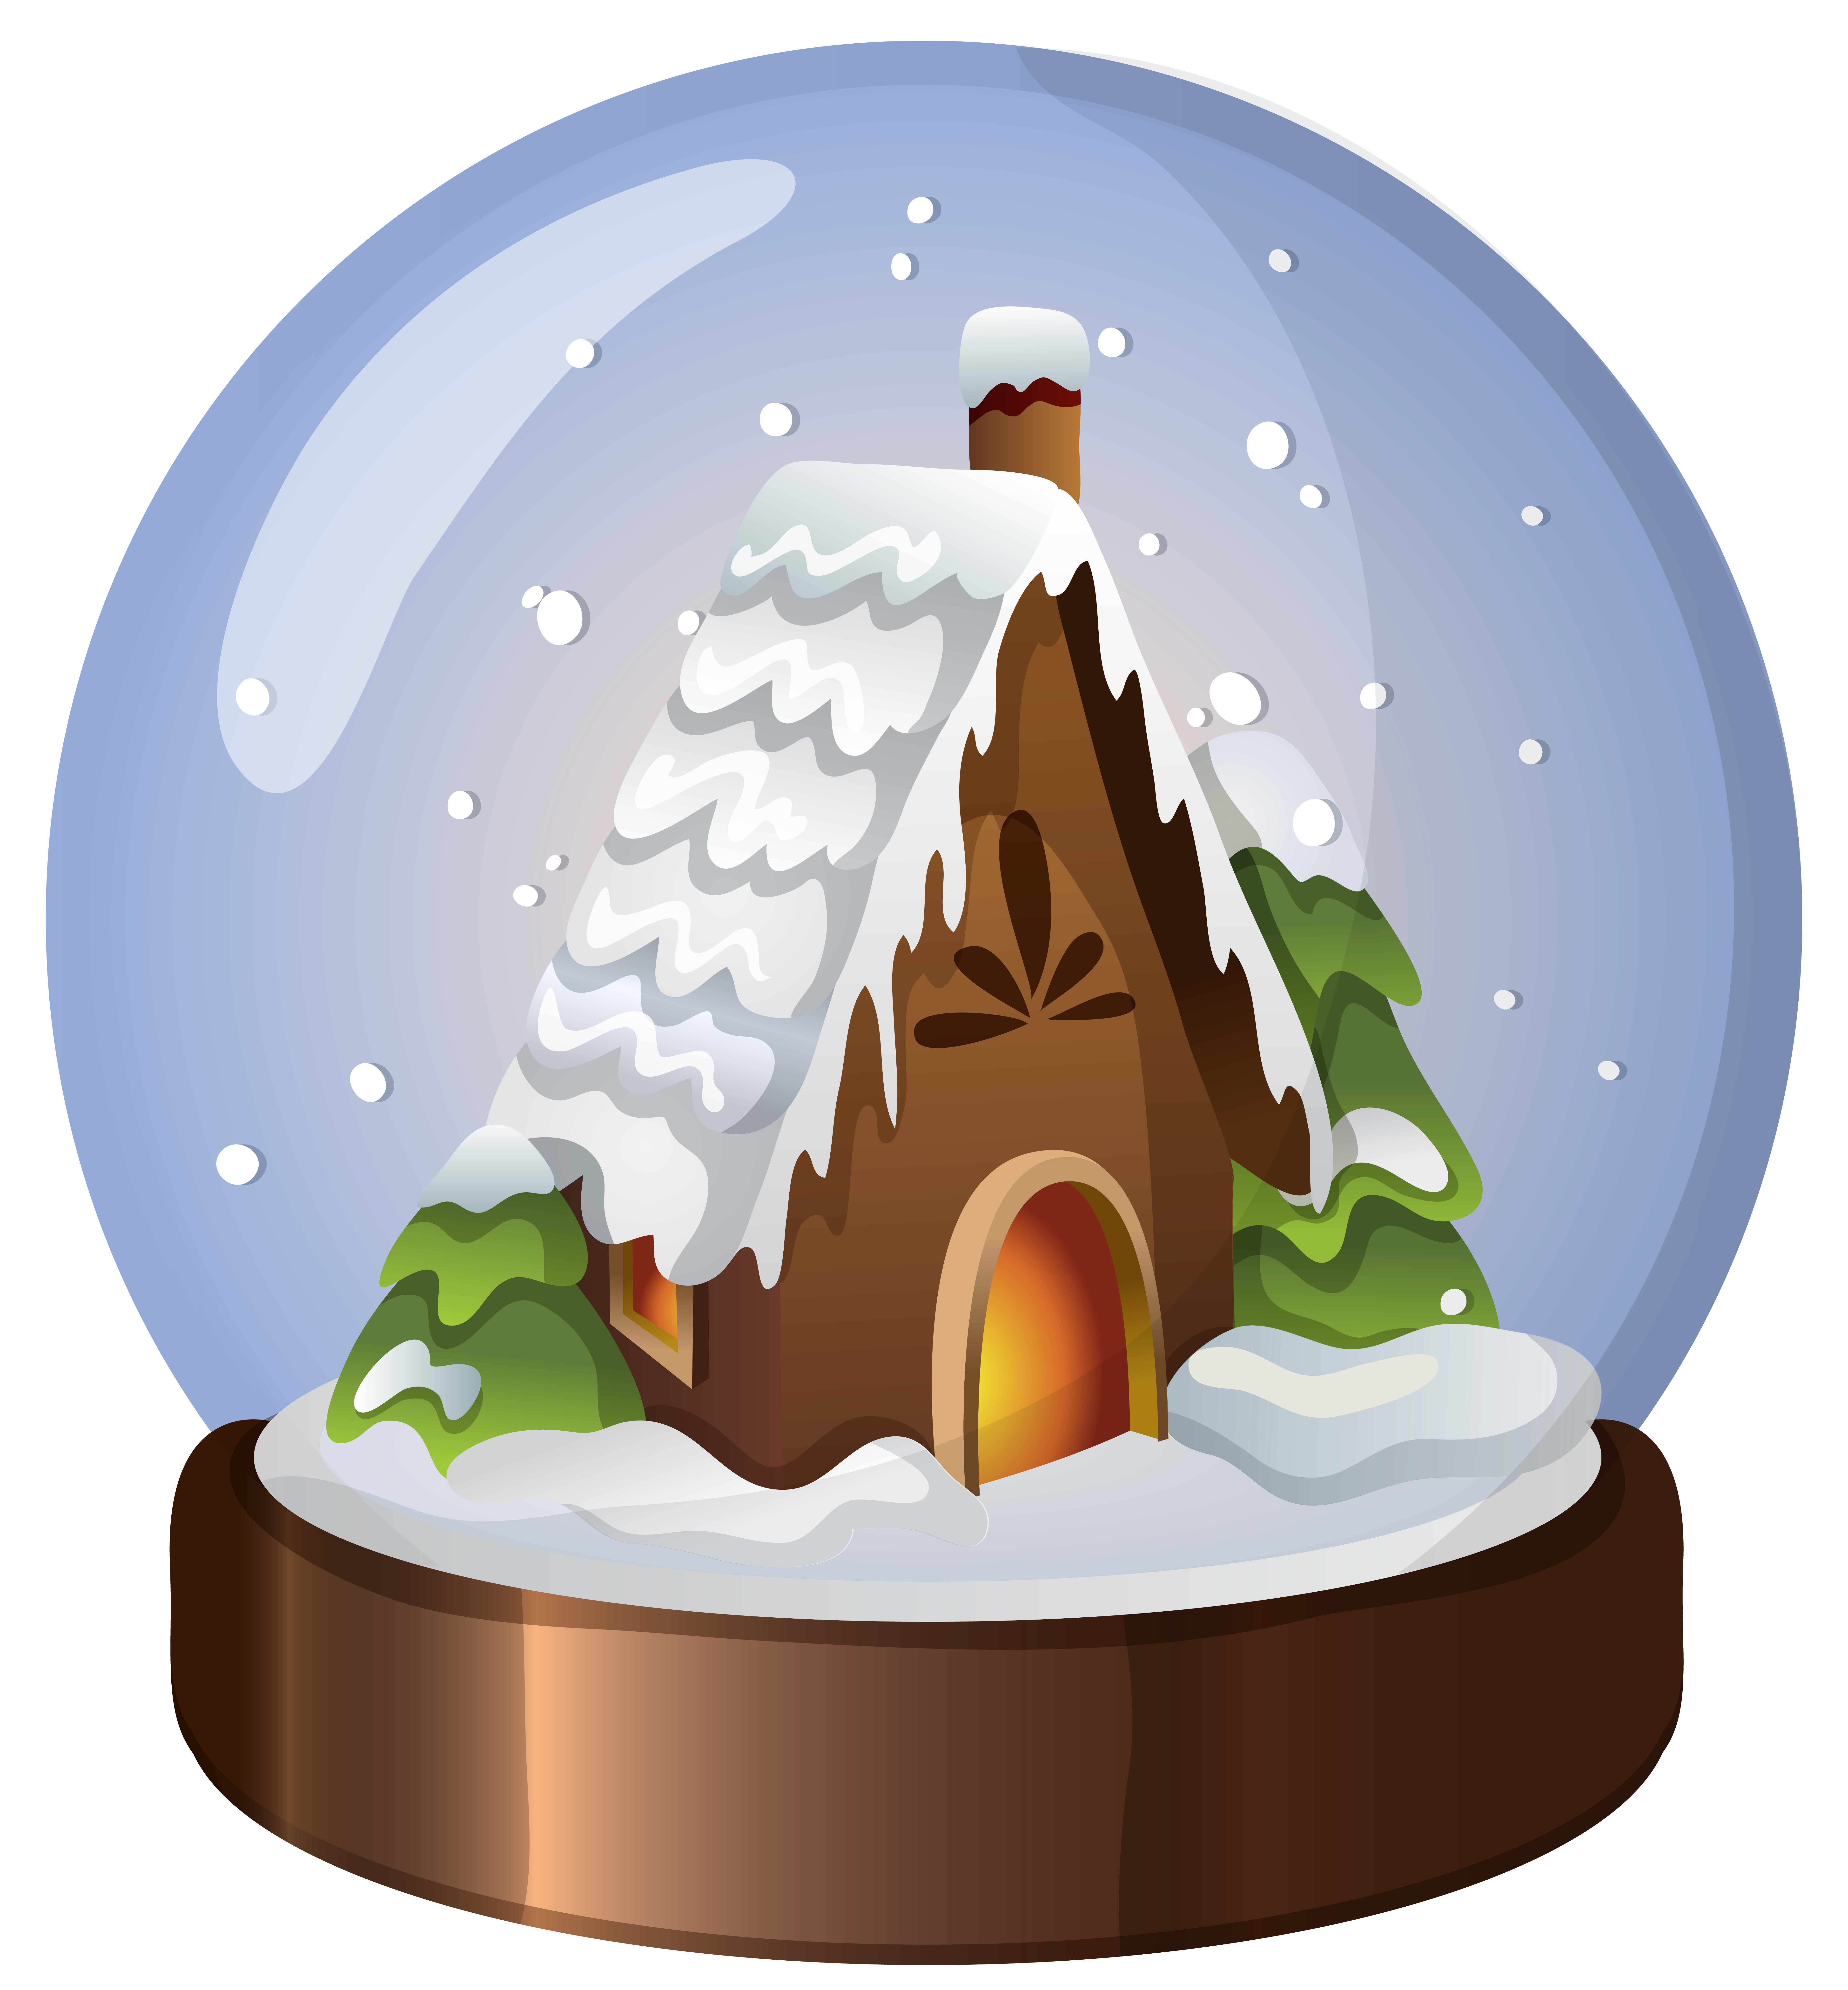 Christmas scene clipart png freeuse library Christmas House Snow Globe PNG Clip Art Image | Gallery ... png freeuse library